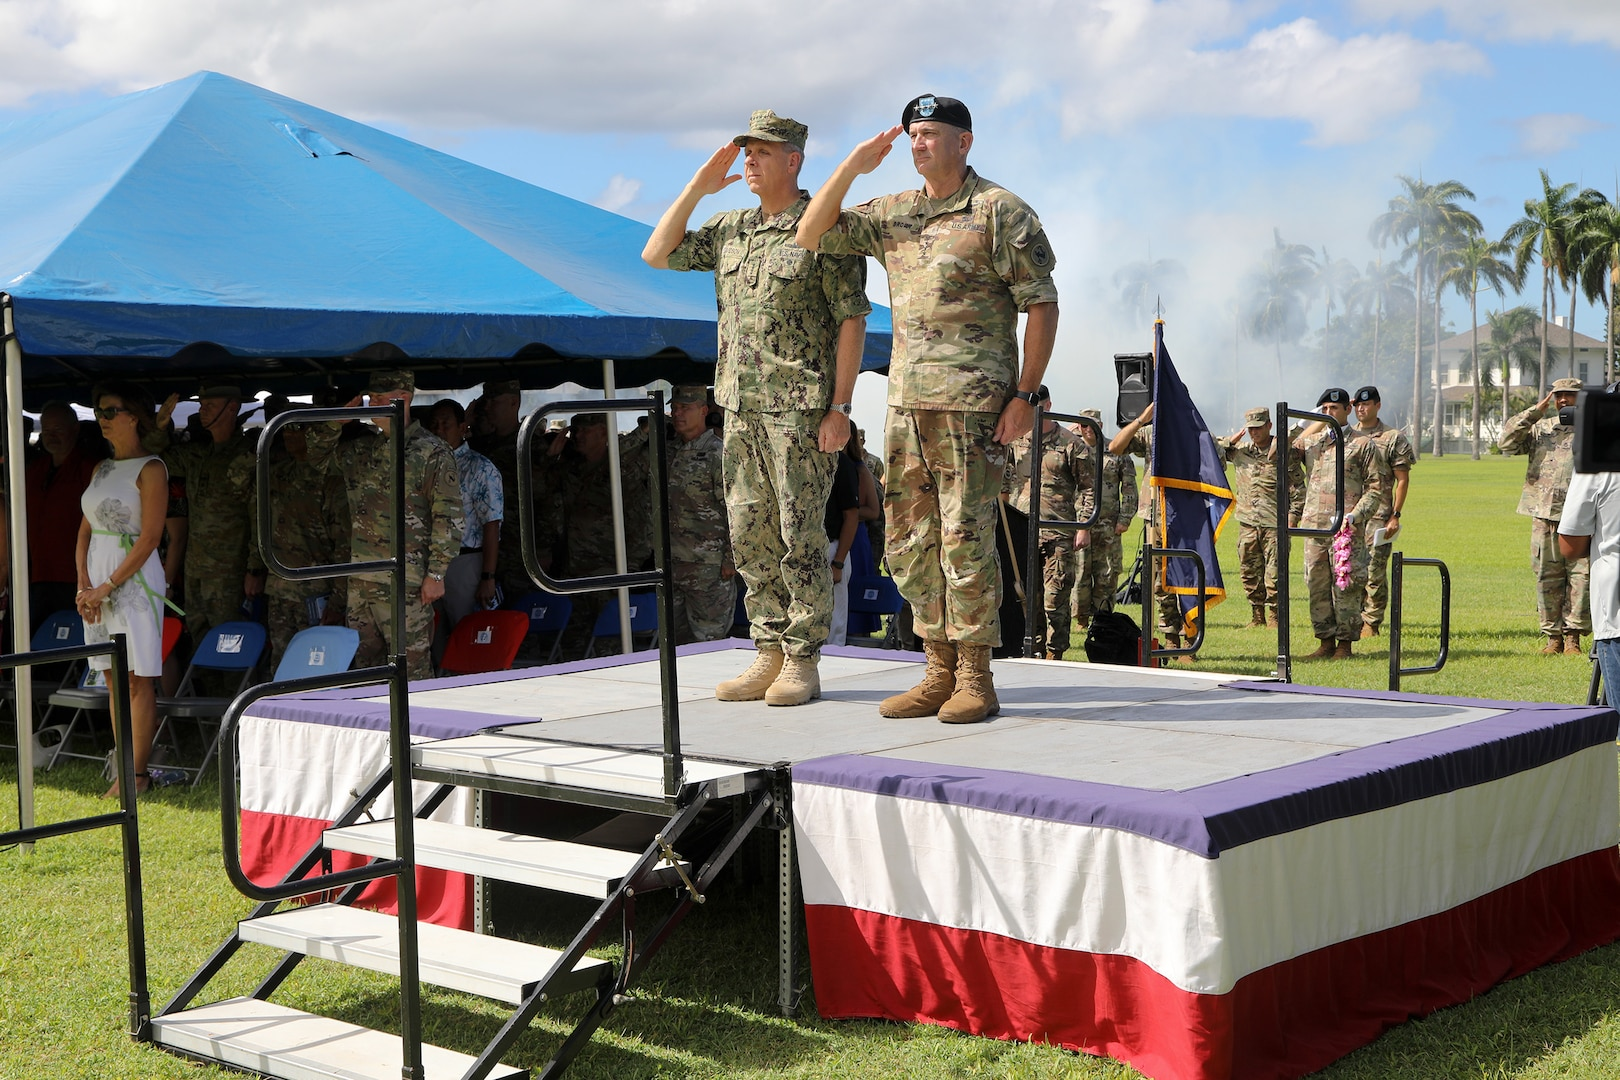 U.S. Army Pacific Bids Aloha to Commanding General Robert Brown